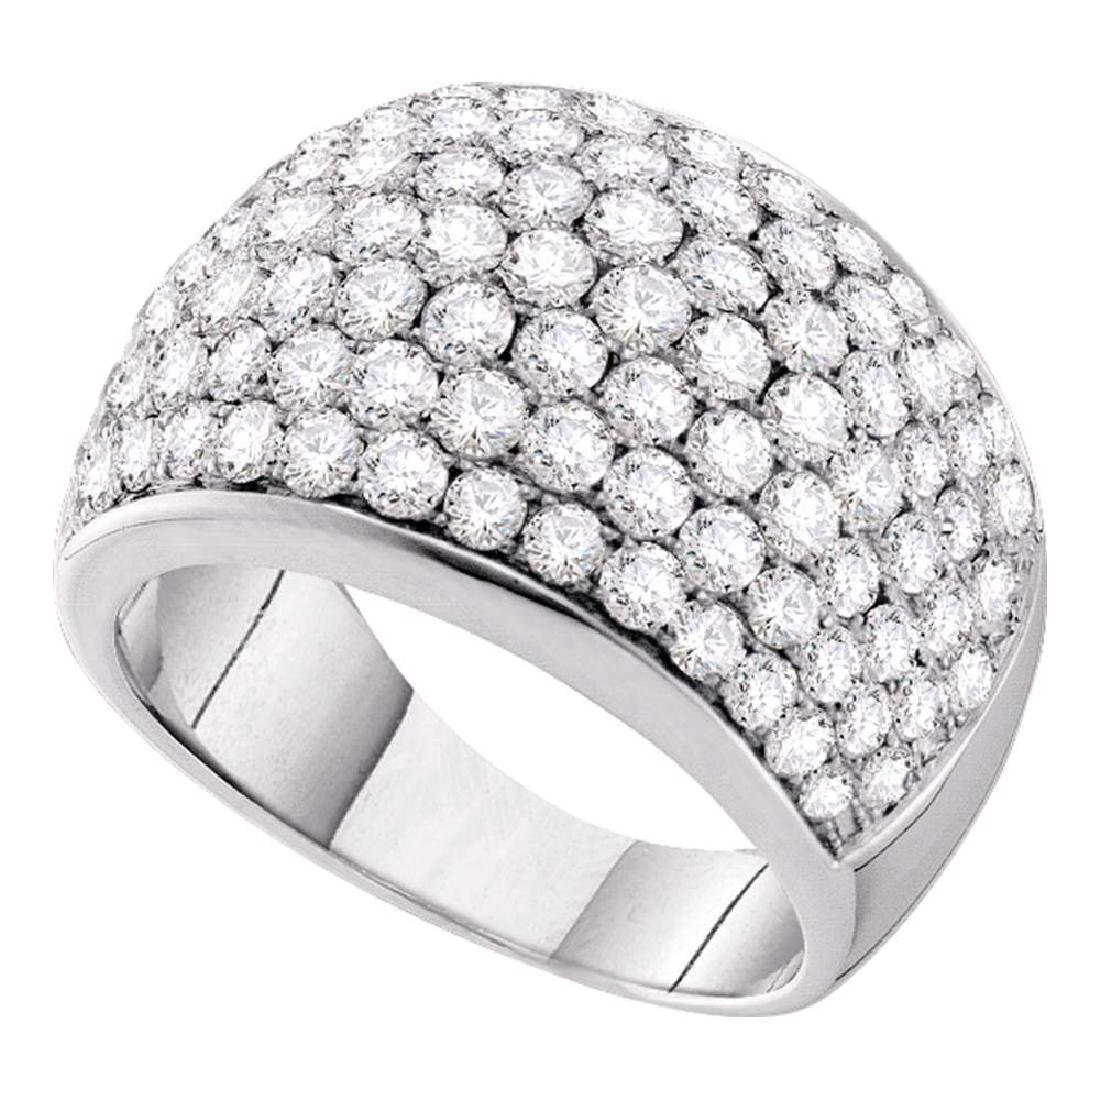 3 CTW Pave-set Diamond Cocktail Ring 14KT White Gold -